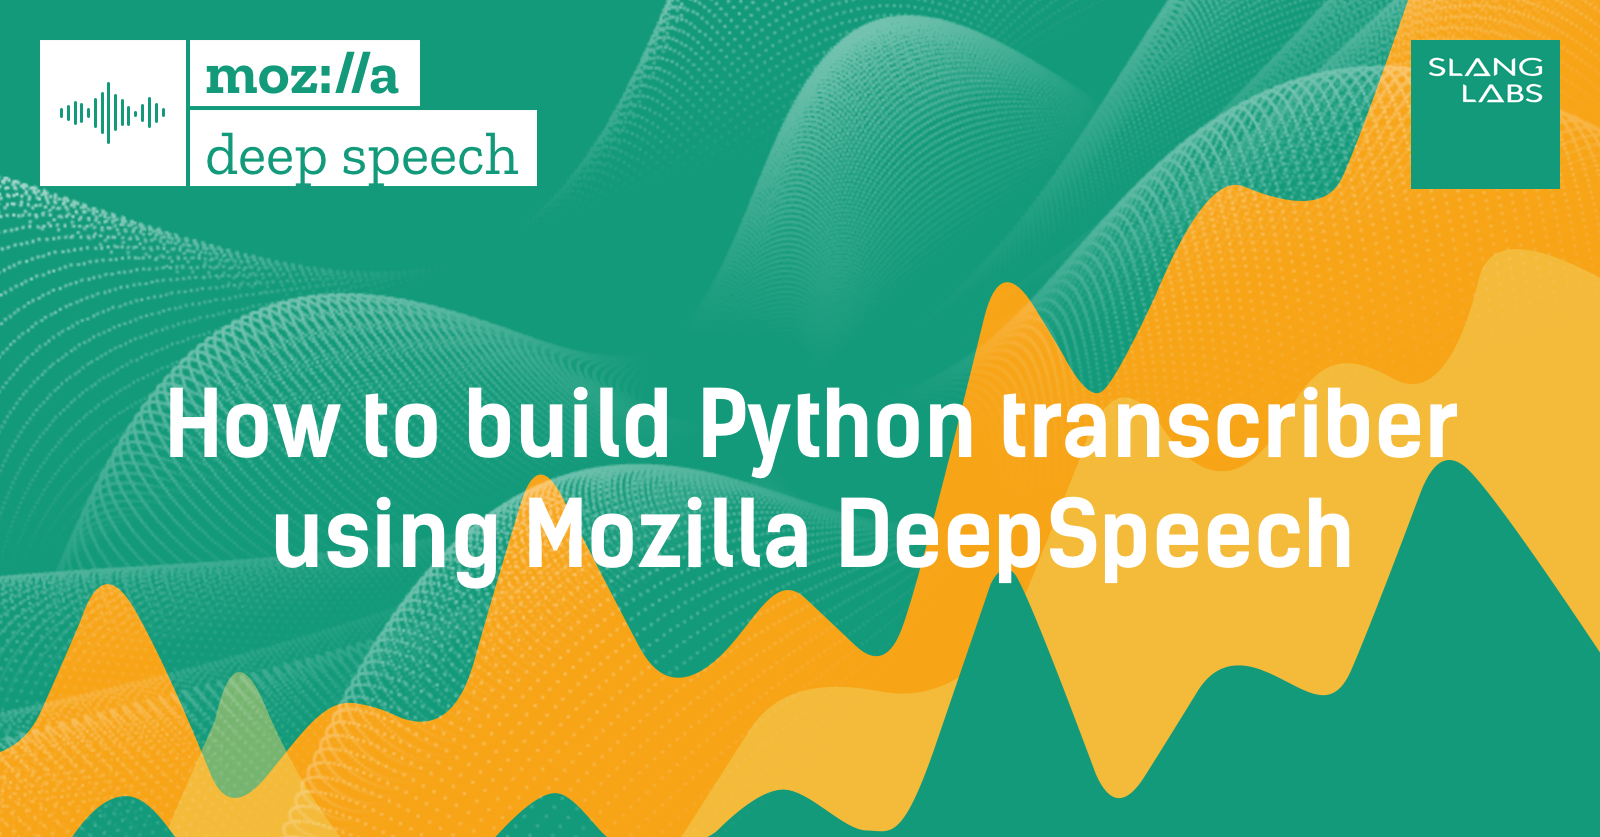 How to build Python transcriber using Mozilla DeepSpeech